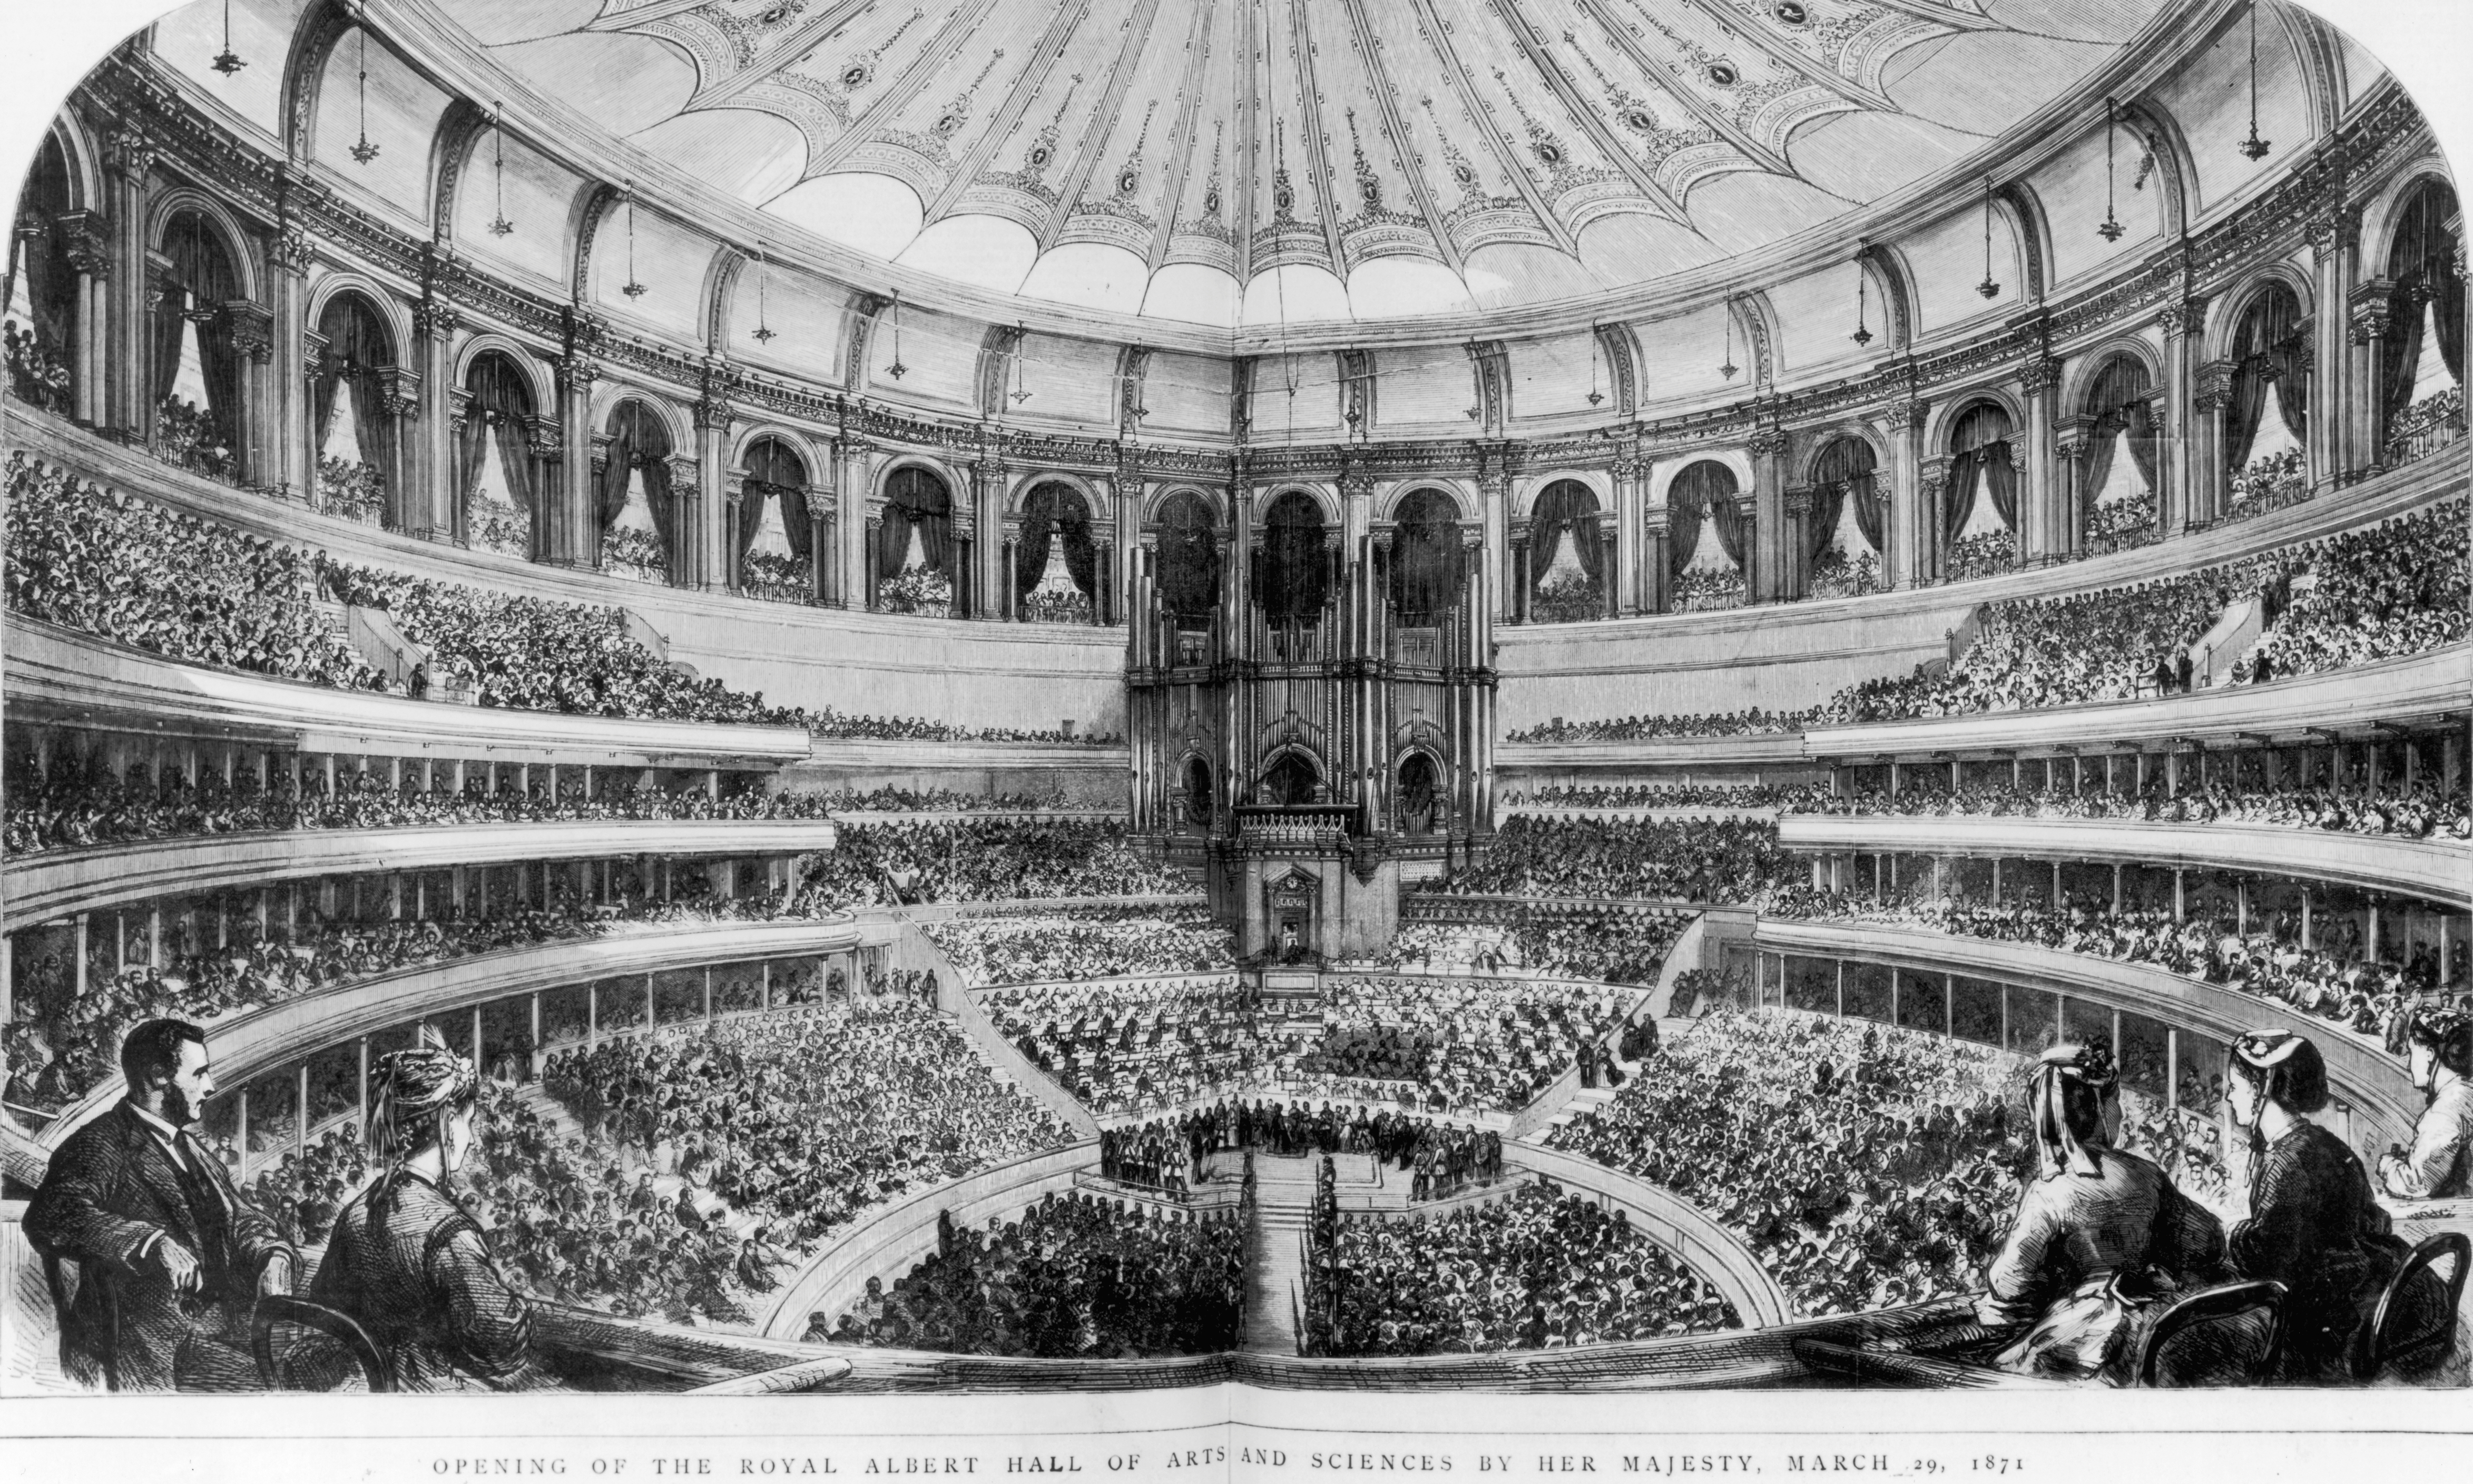 RAH Grand Opening by Queen Victoria 29 March 1871 The Graphic